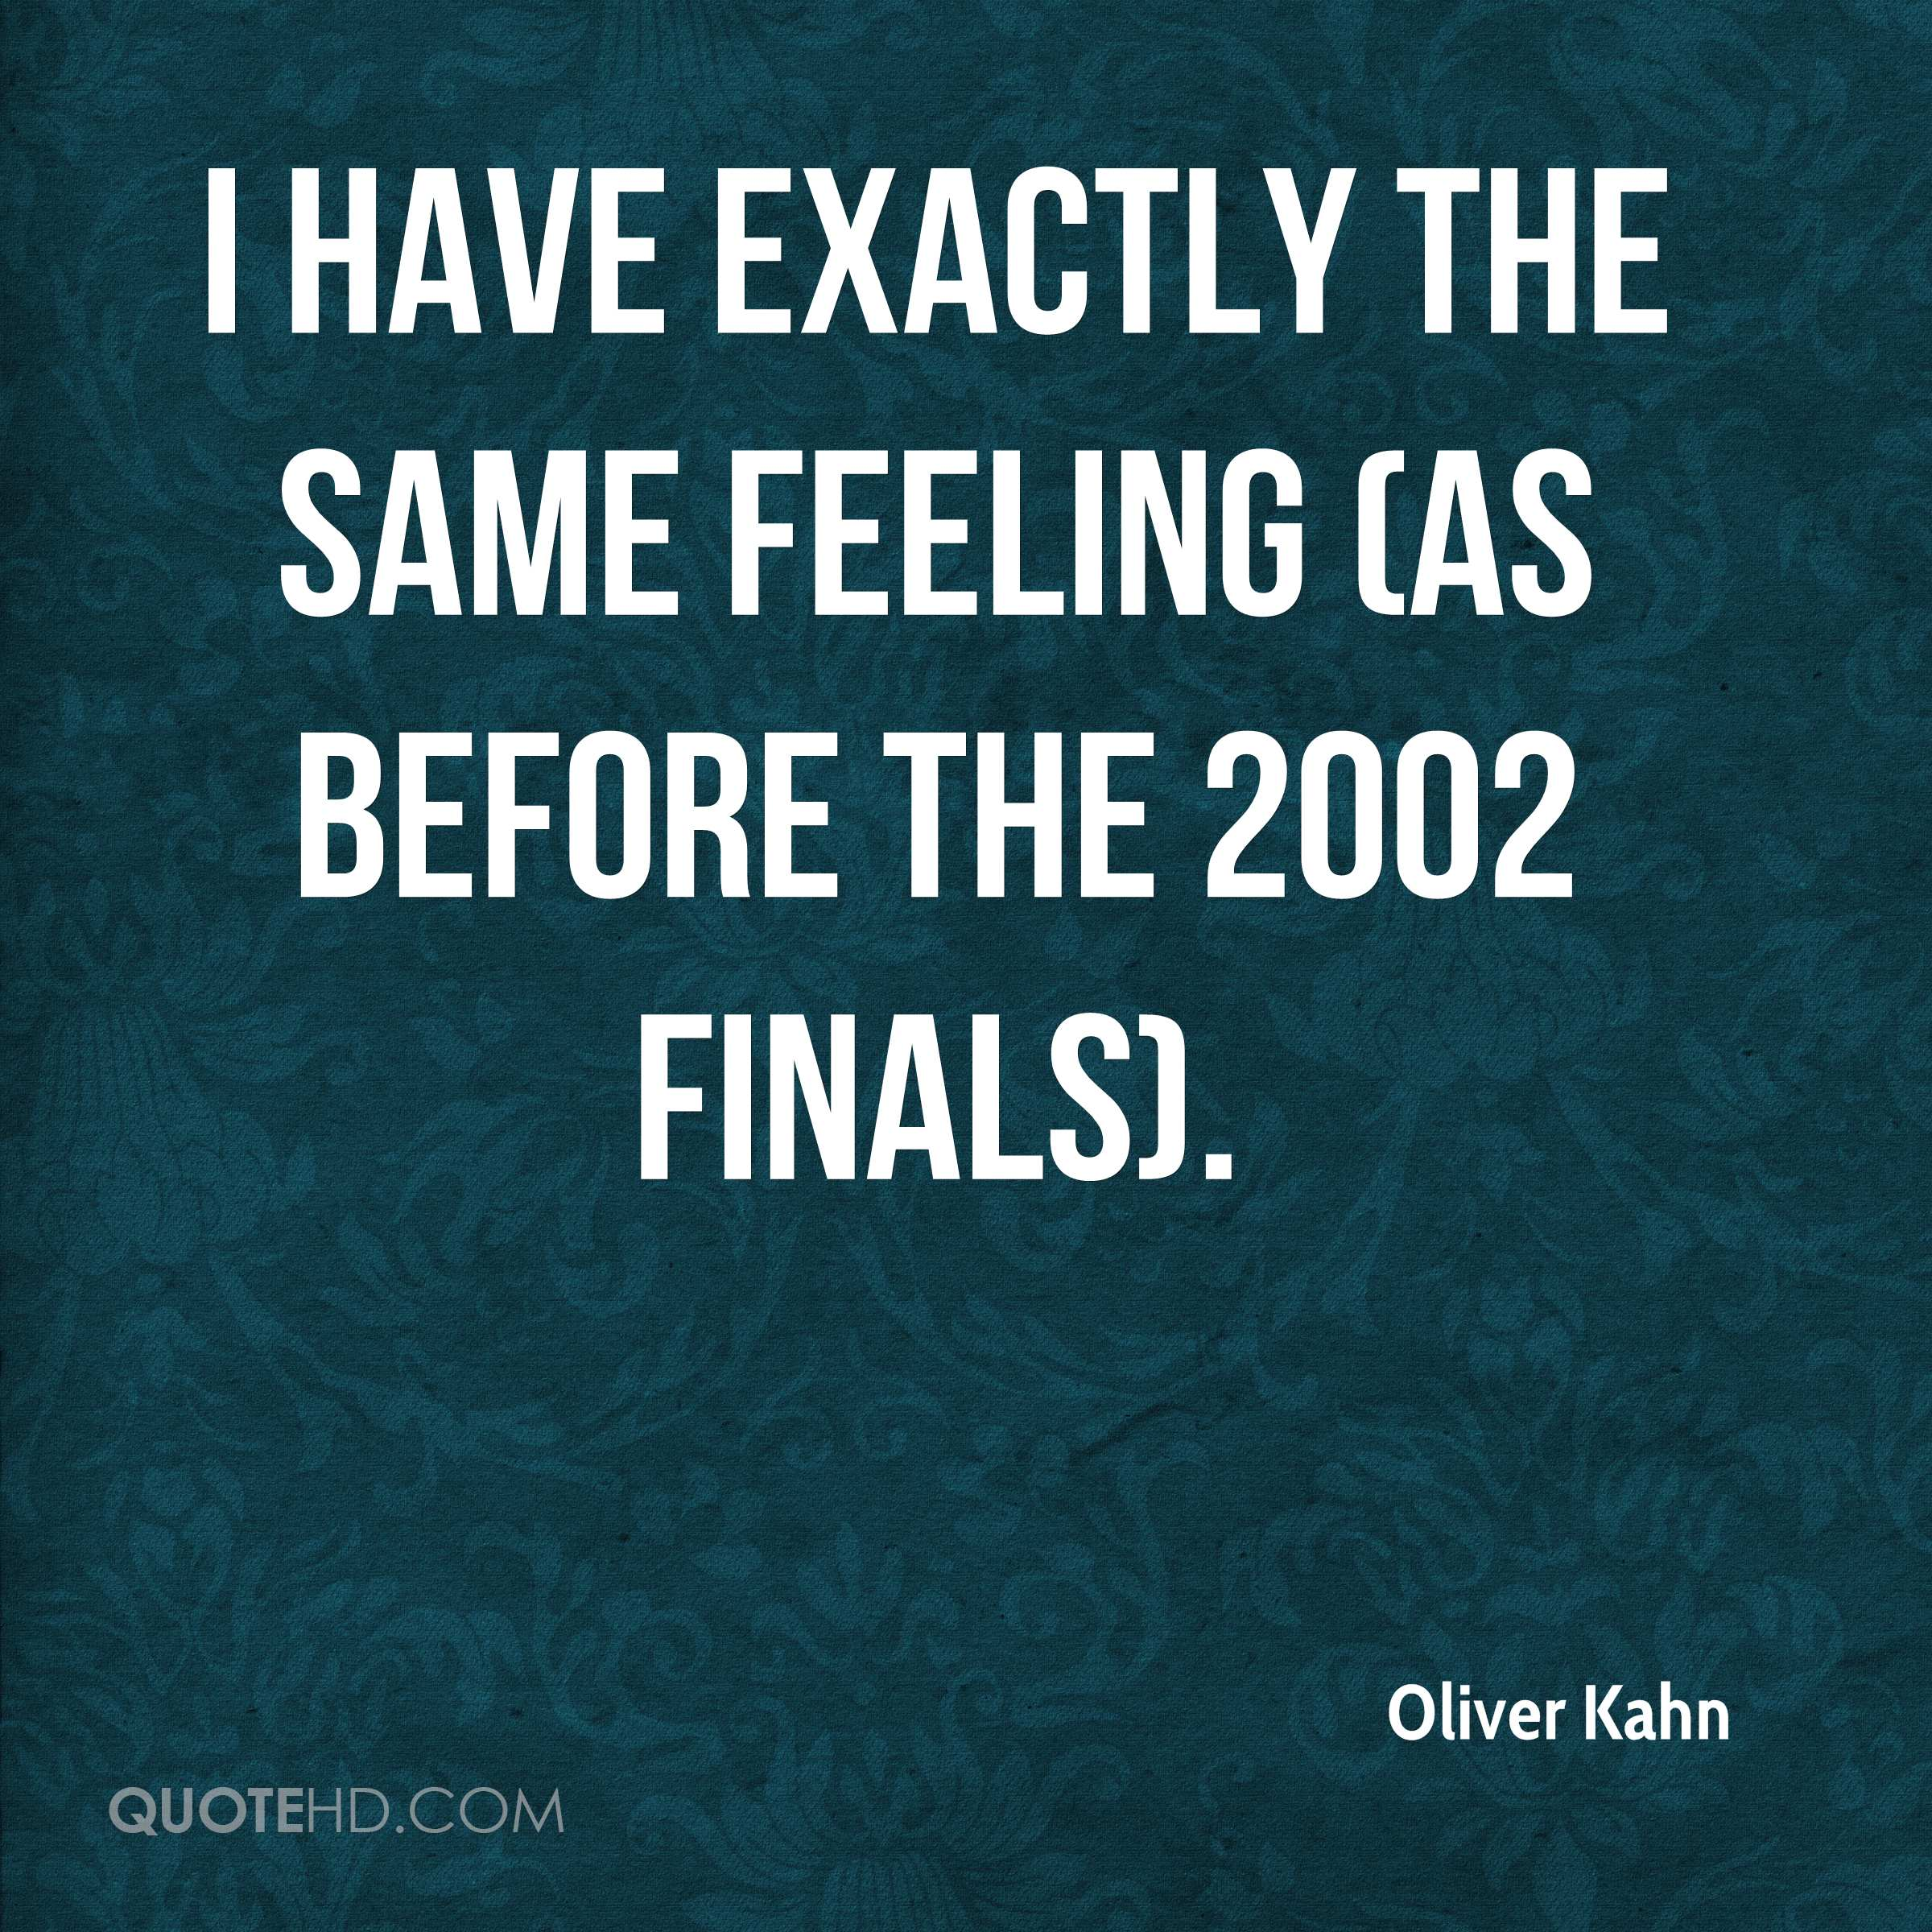 I have exactly the same feeling (as before the 2002 finals).